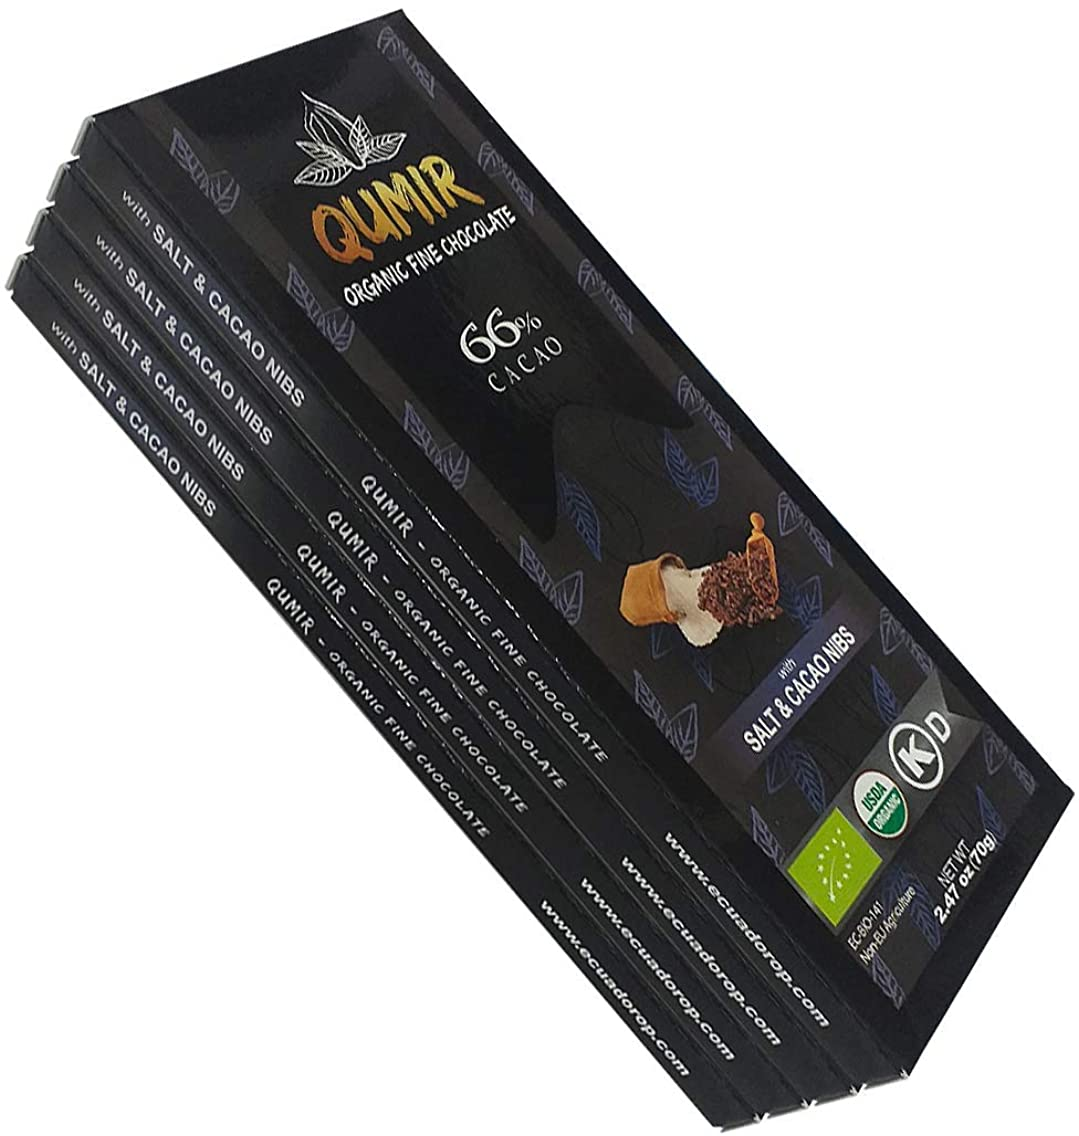 Qumir Organic Dark Chocolate | 4 Pack, Salt and Nibs | made with amazon arriba cacao beans | Pack of 4 Bars, 2.47oz each.